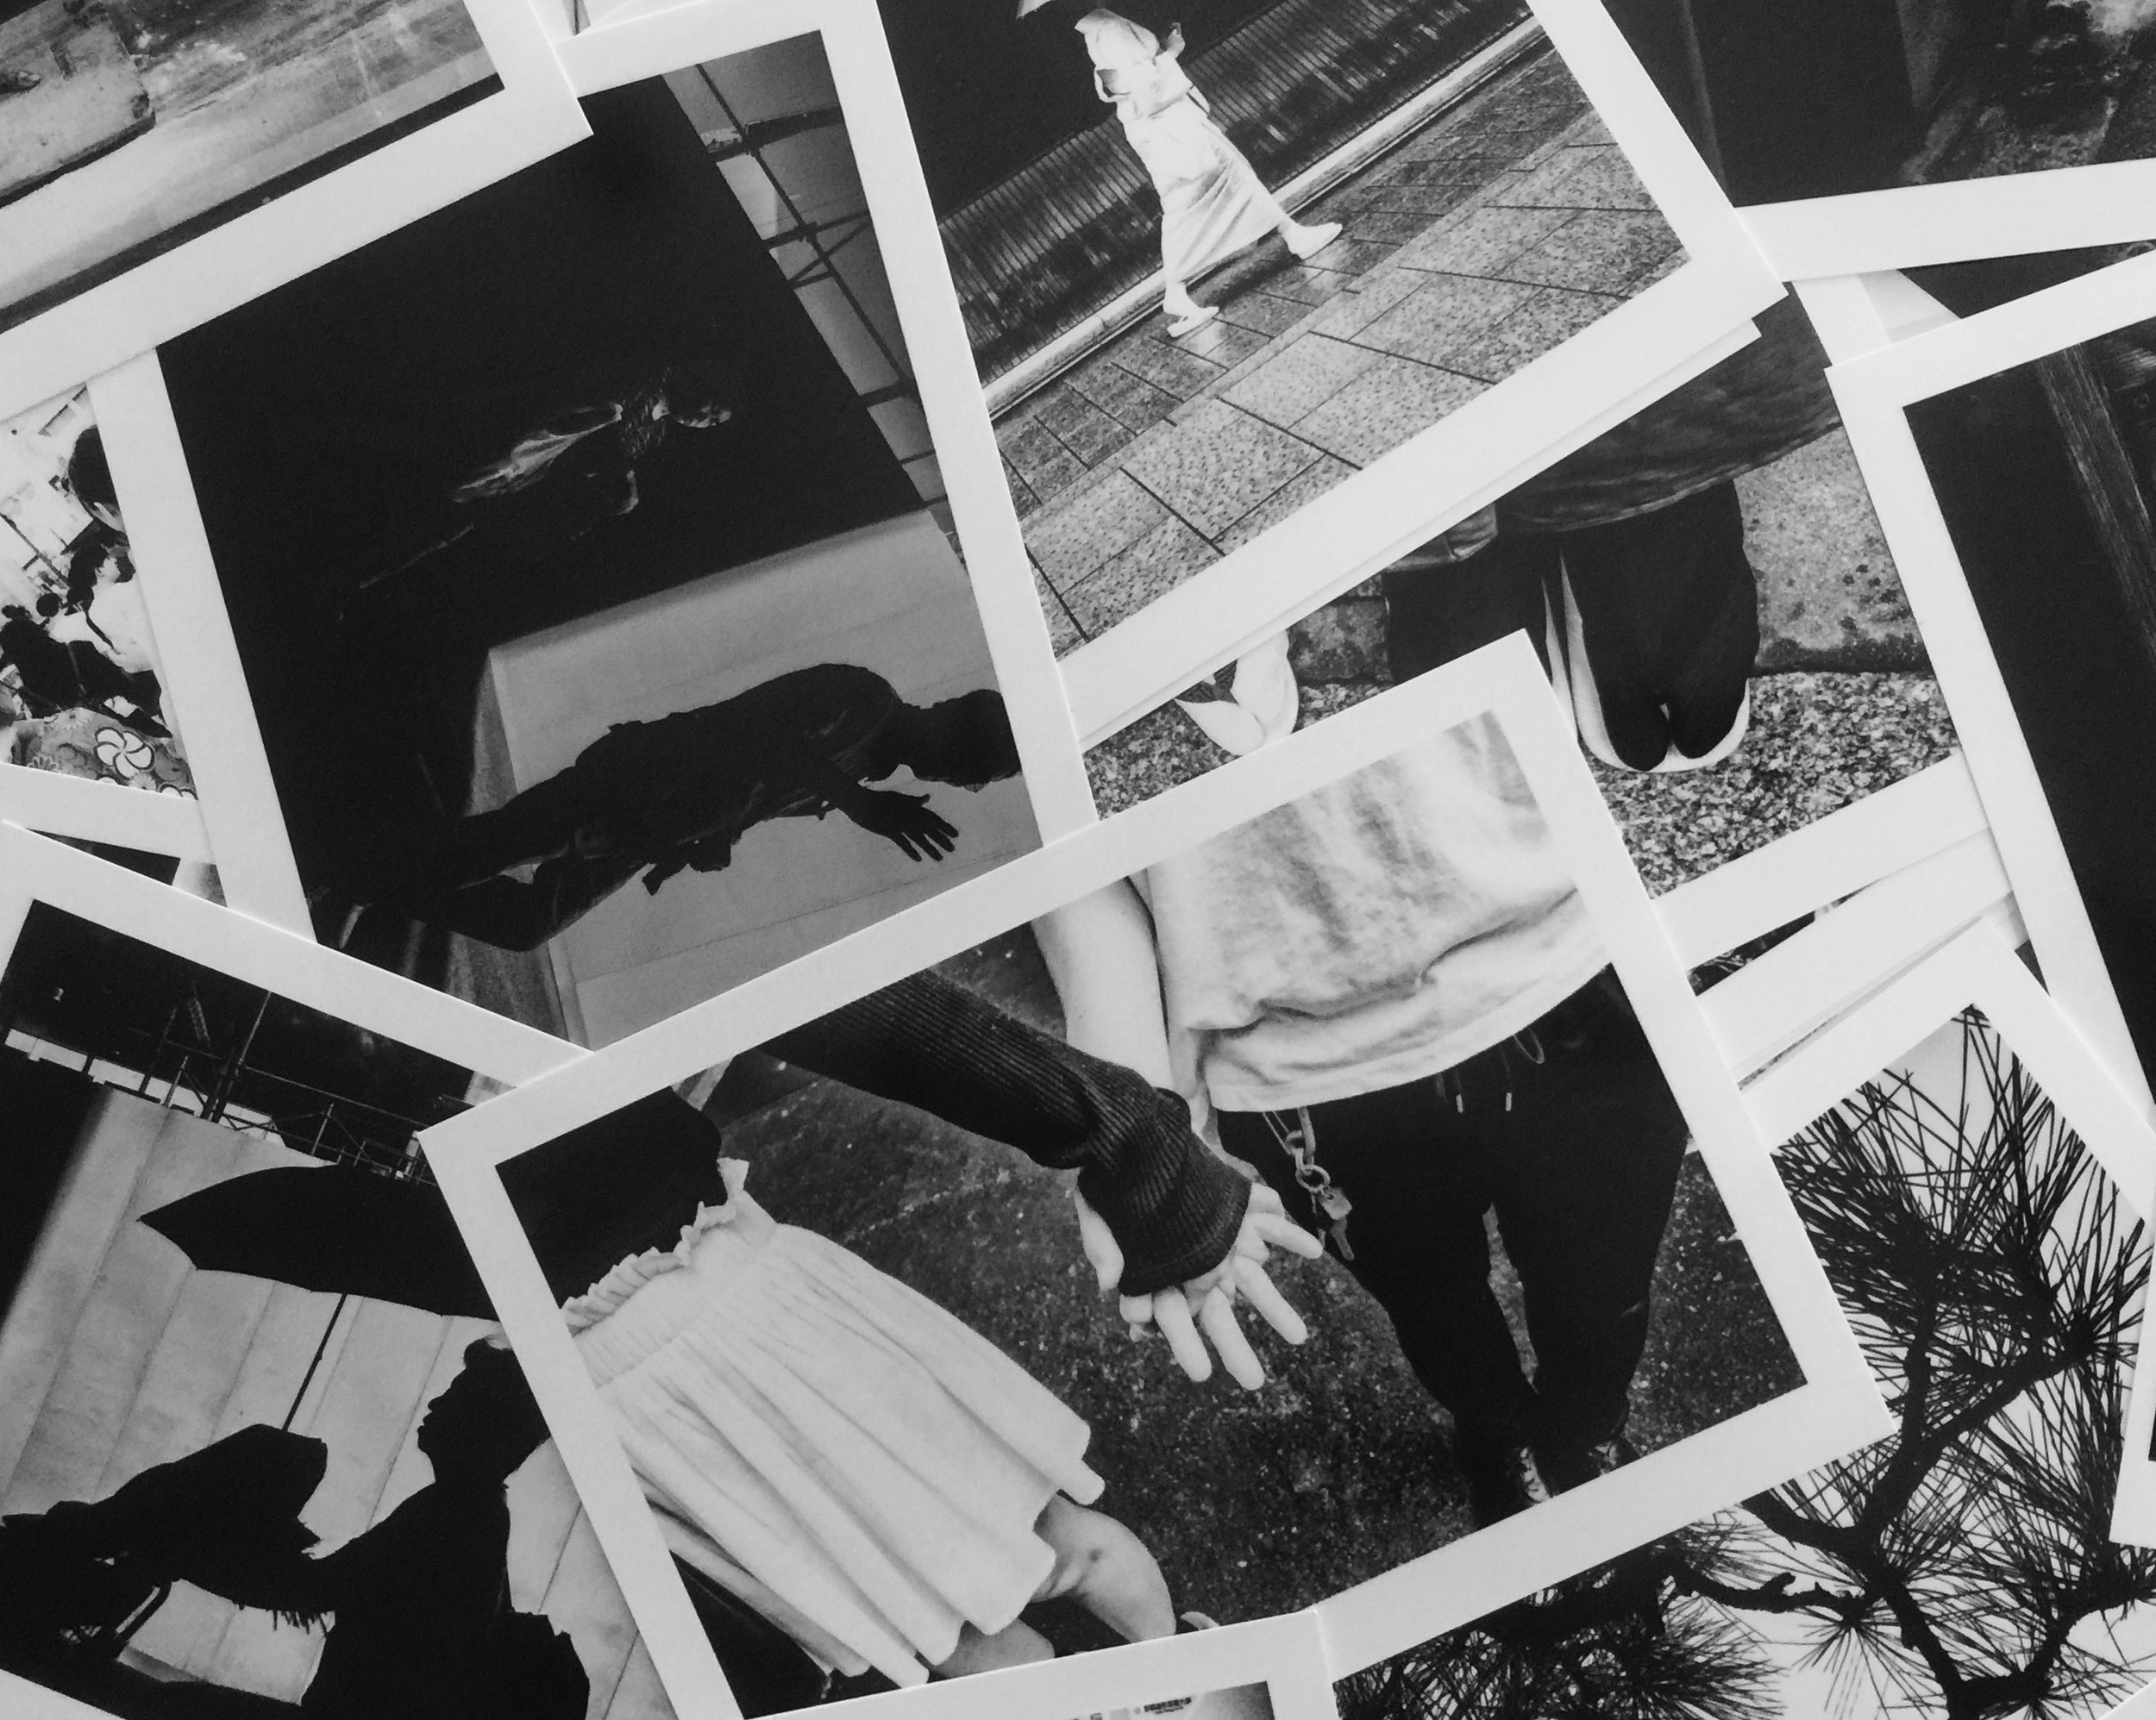 50 Lessons I've Learned From Jacob Aue Sobol's Magnum Workshop in Kyoto by John Hall